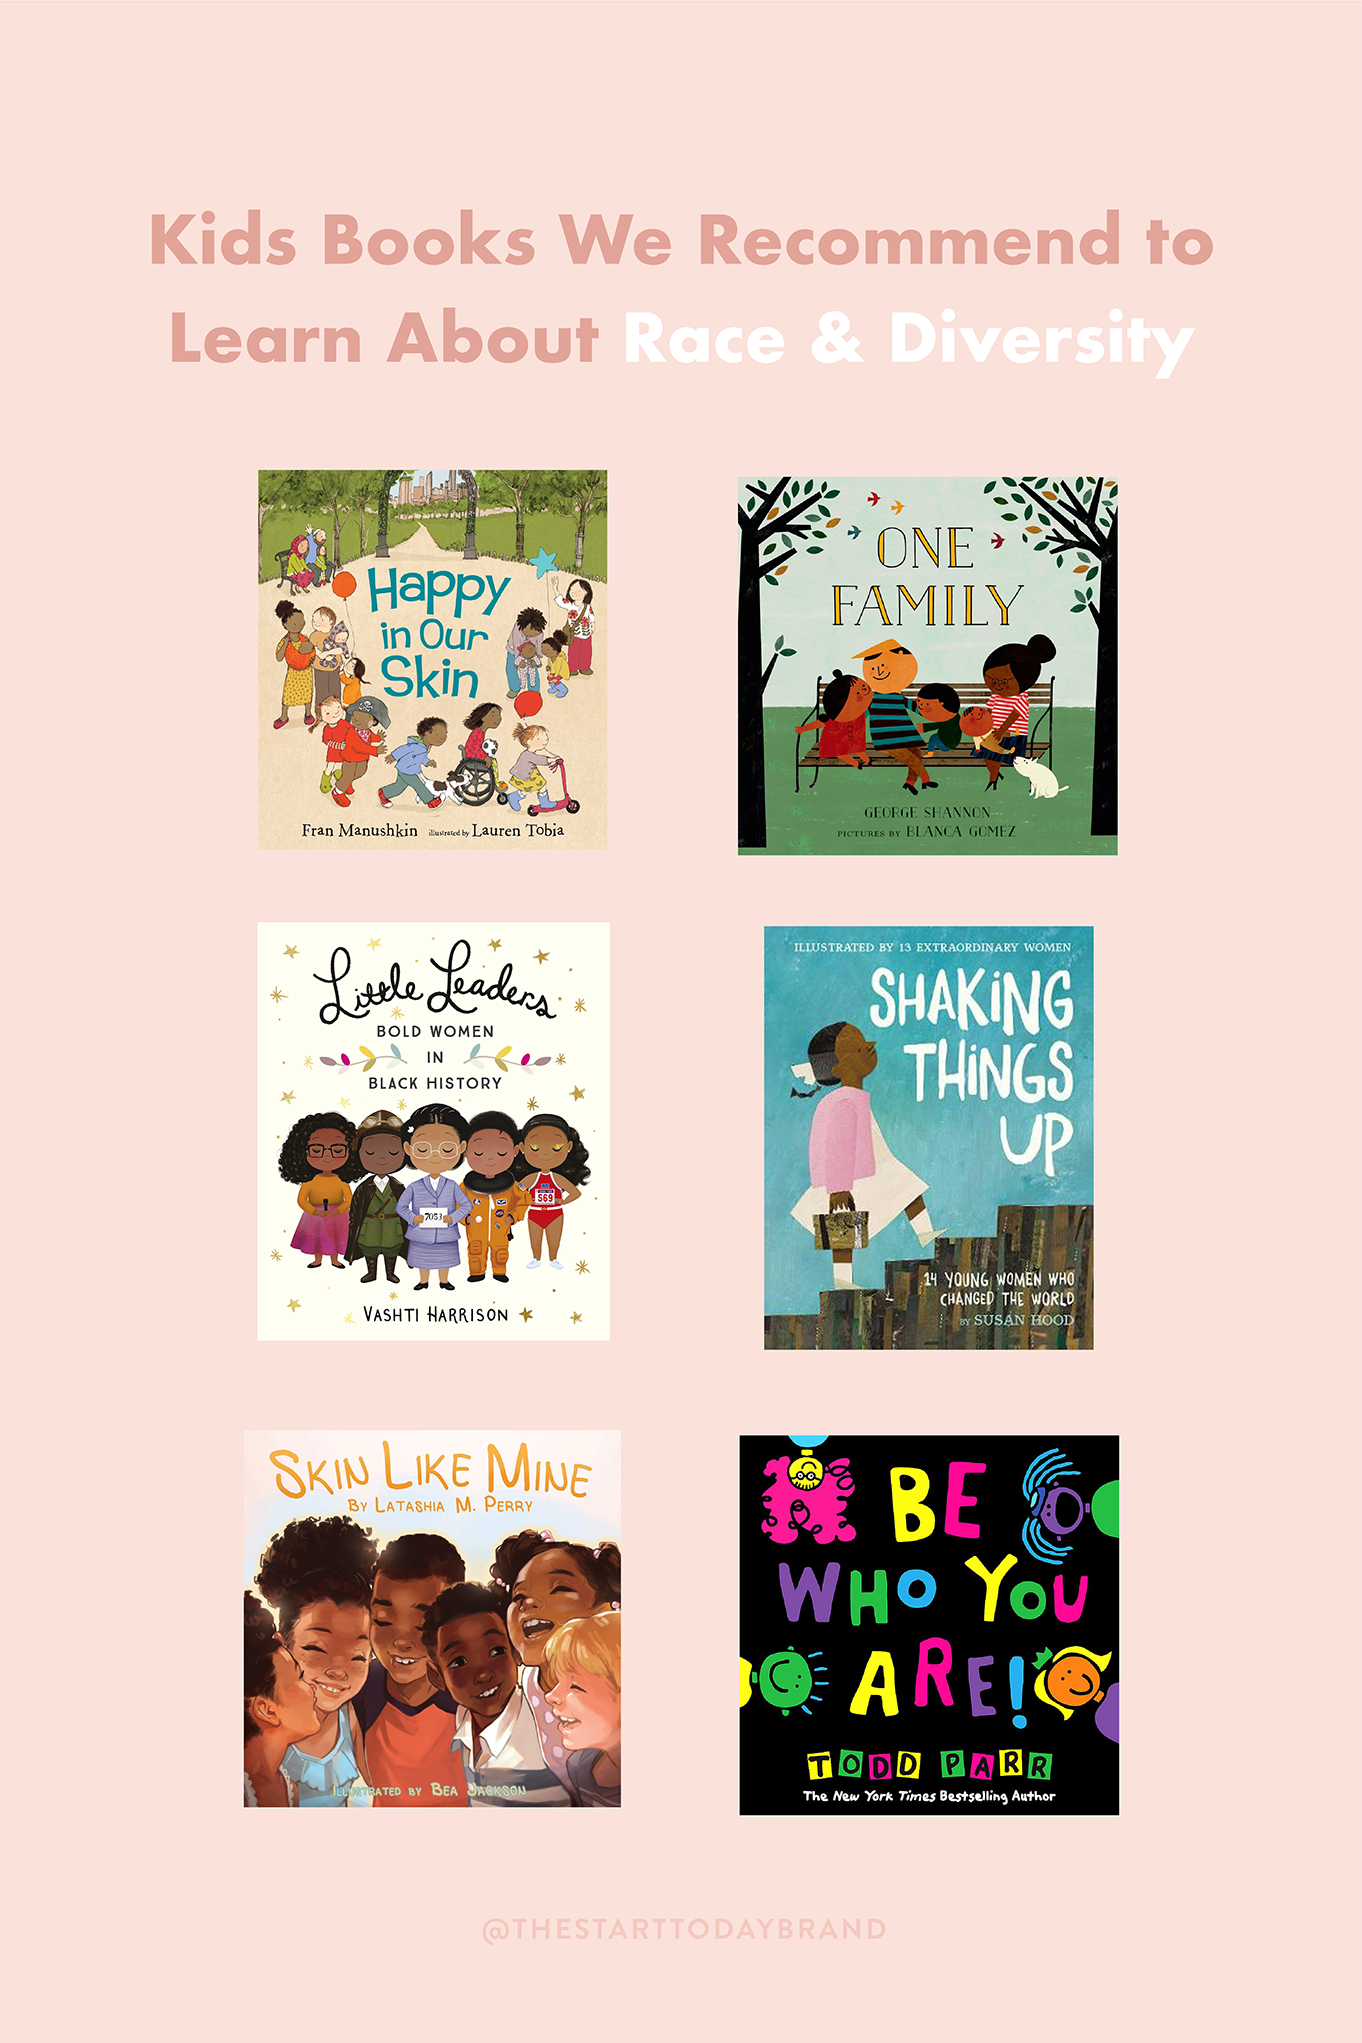 7 Kids Books to Learn About Race & Diversity - StartToday.com